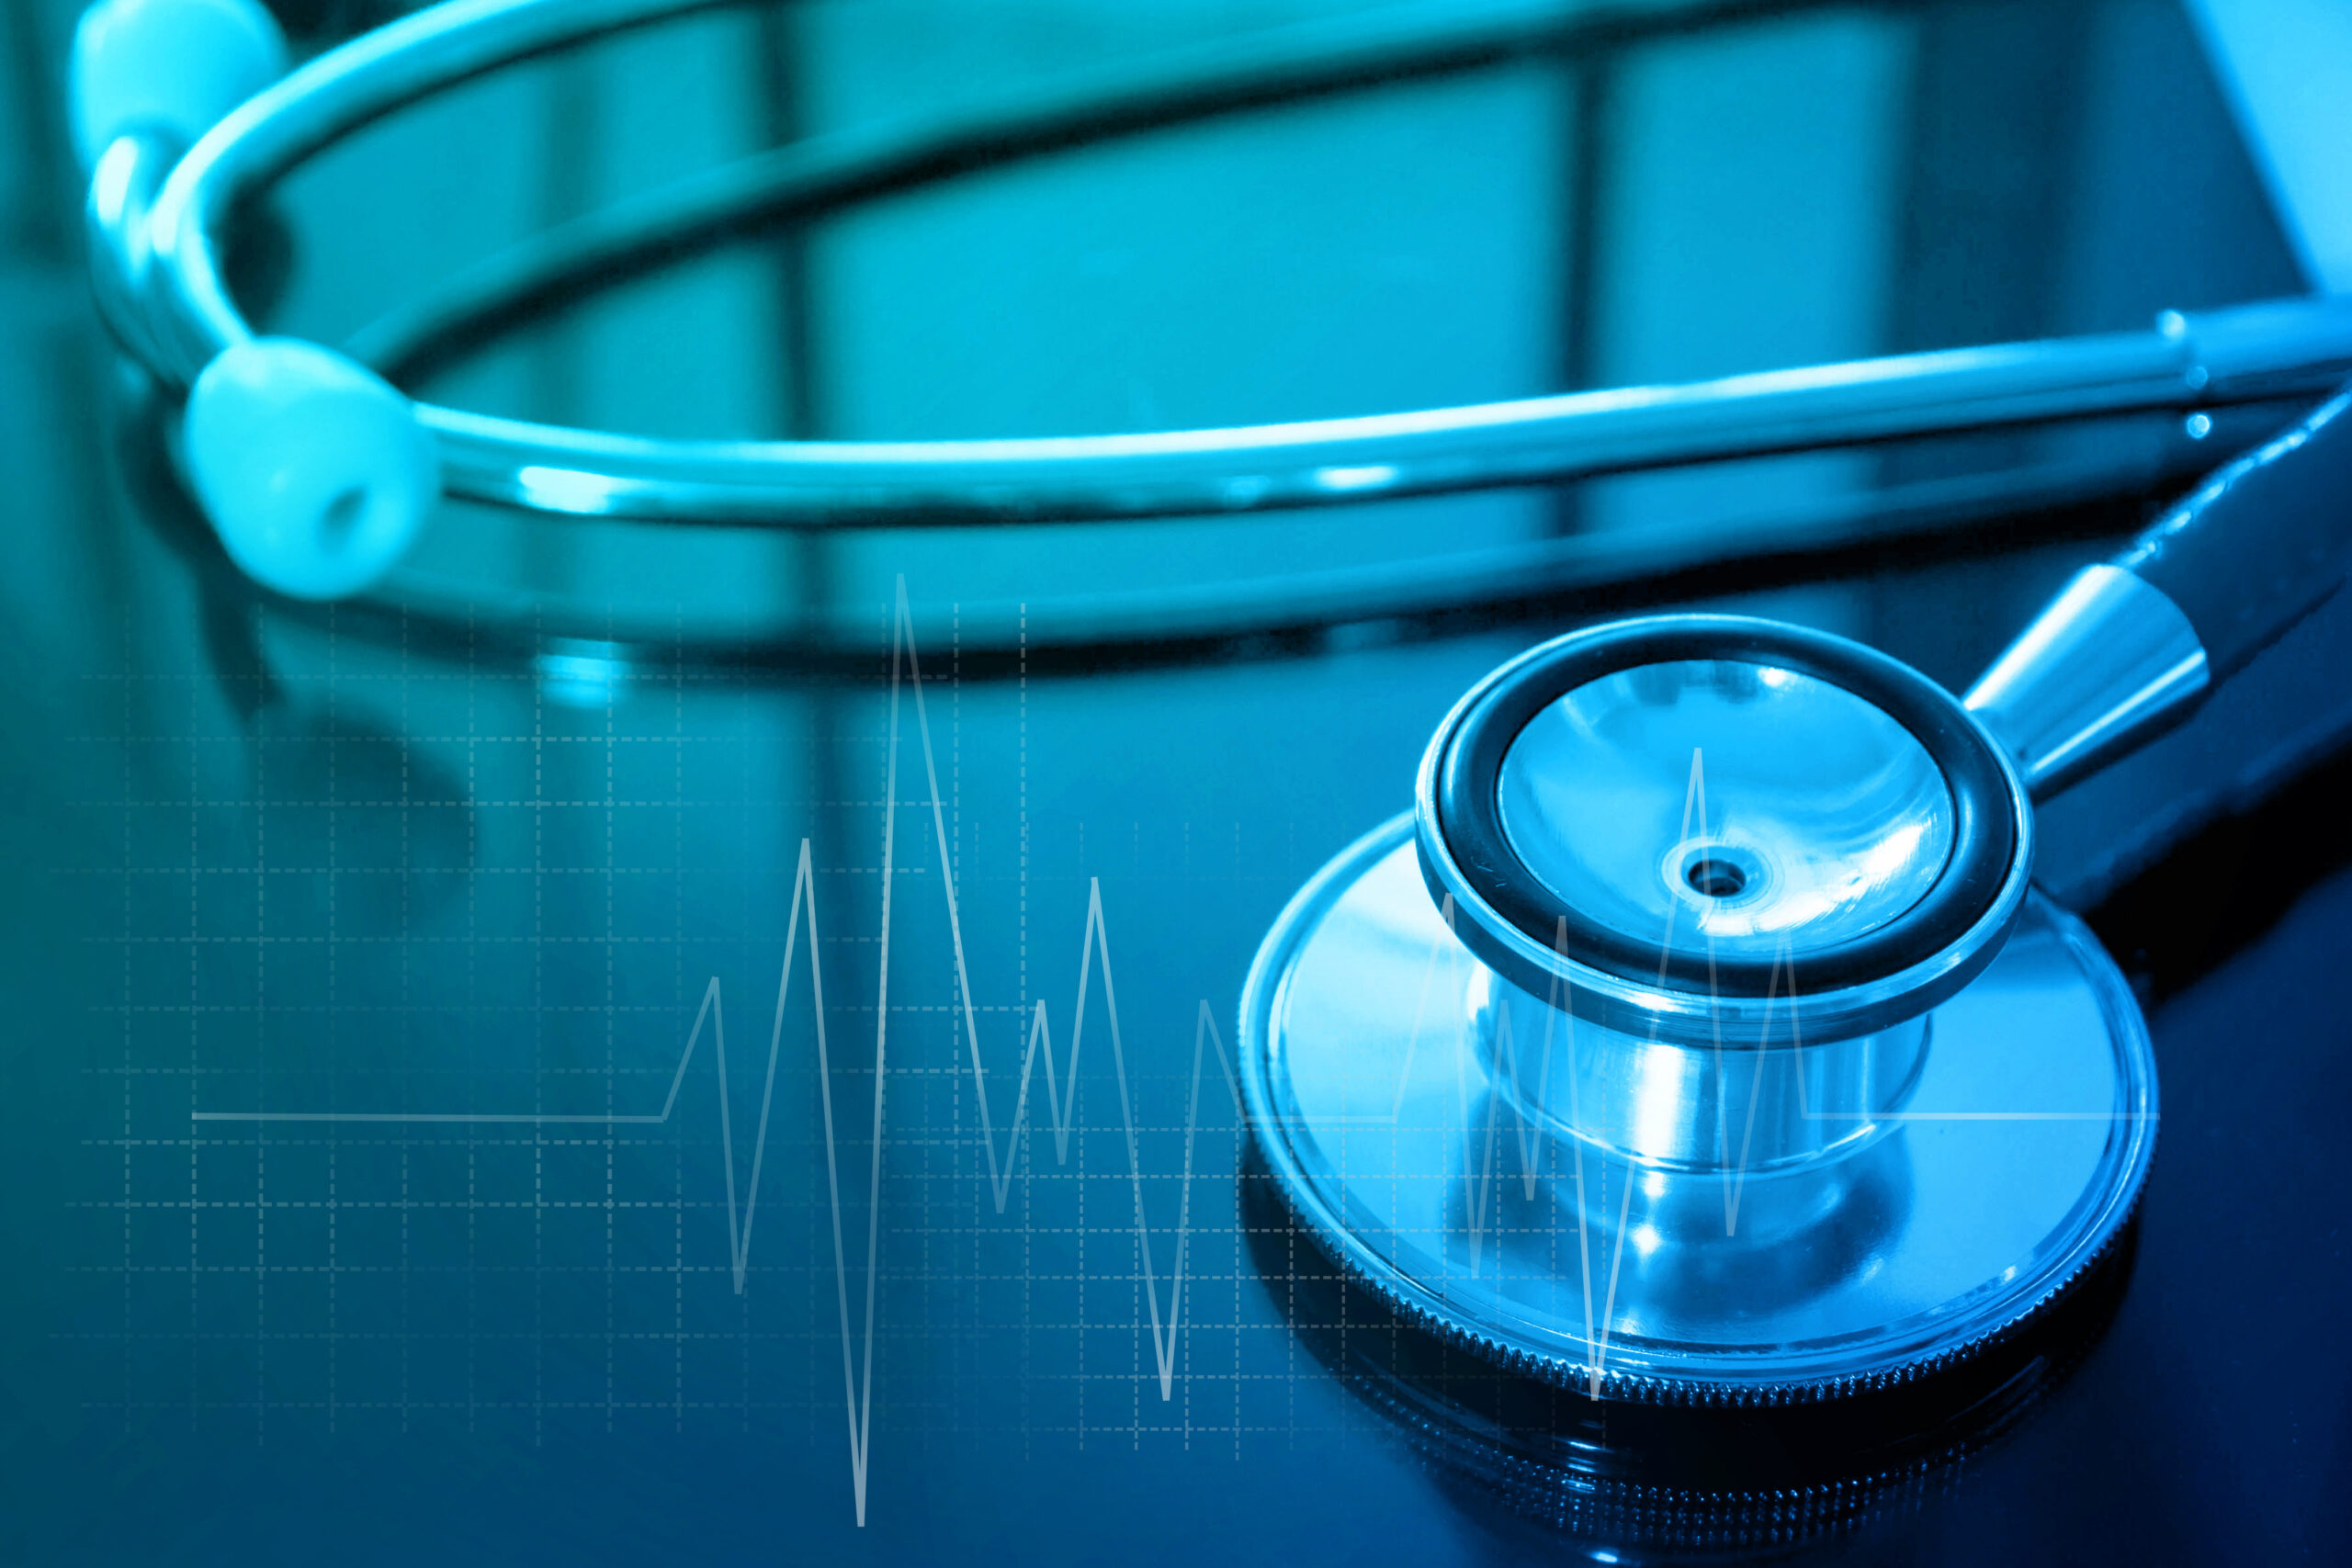 SolarWinds ITOM Software & Services selected by Dutch Healthcare